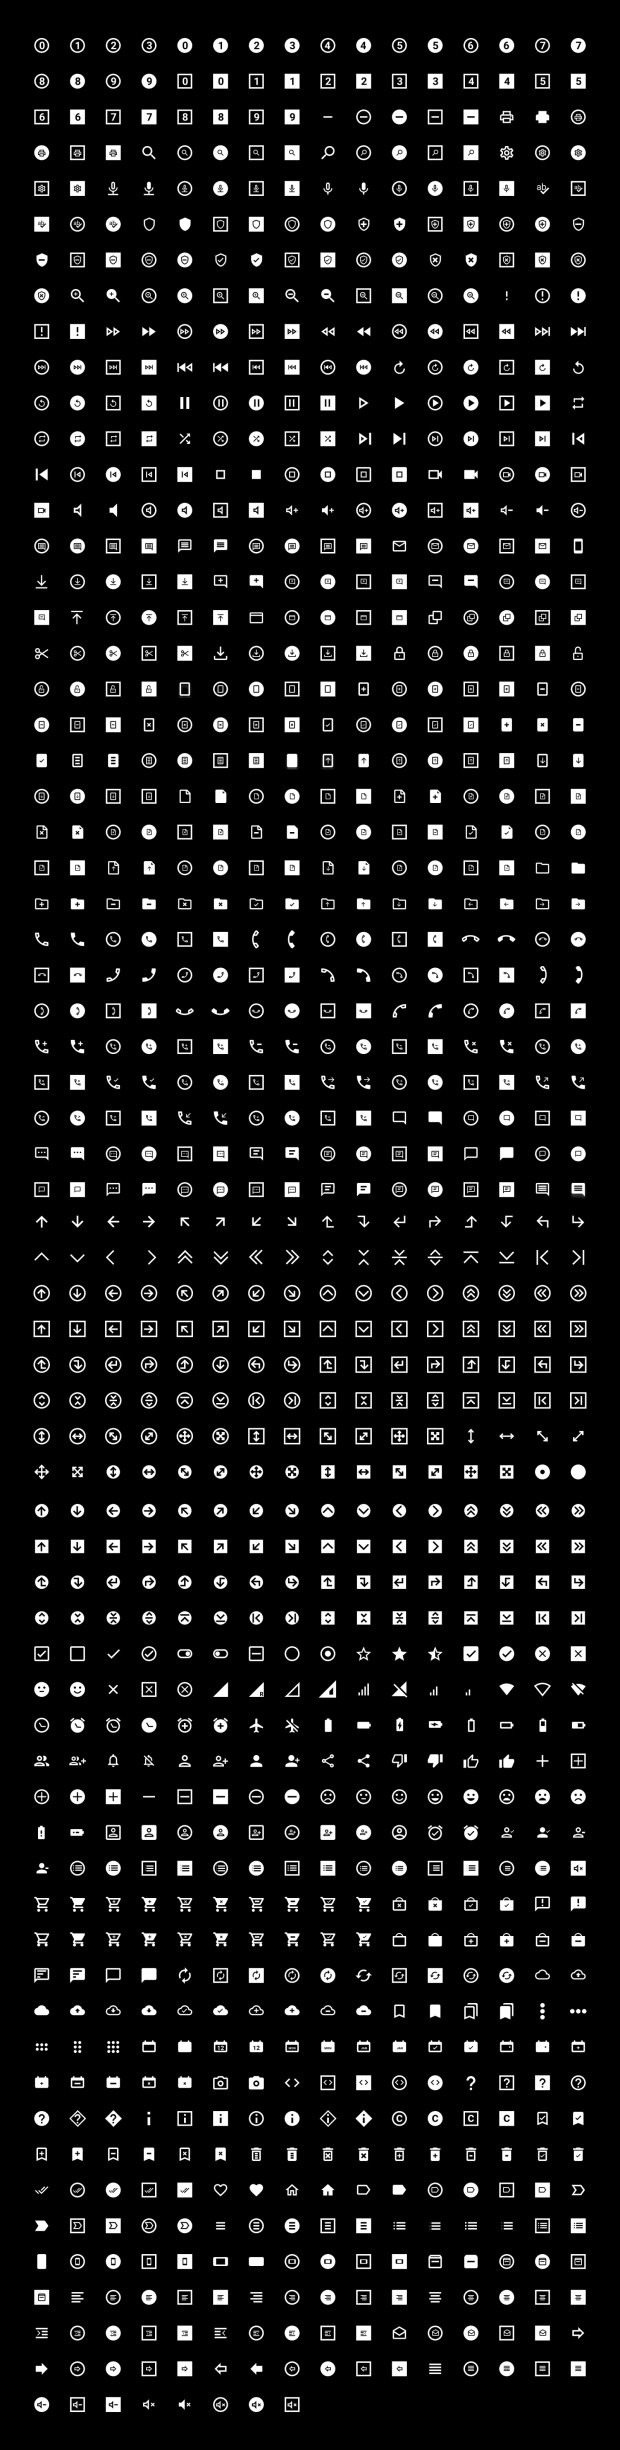 Emblemicons — Open-source Free Icon Library